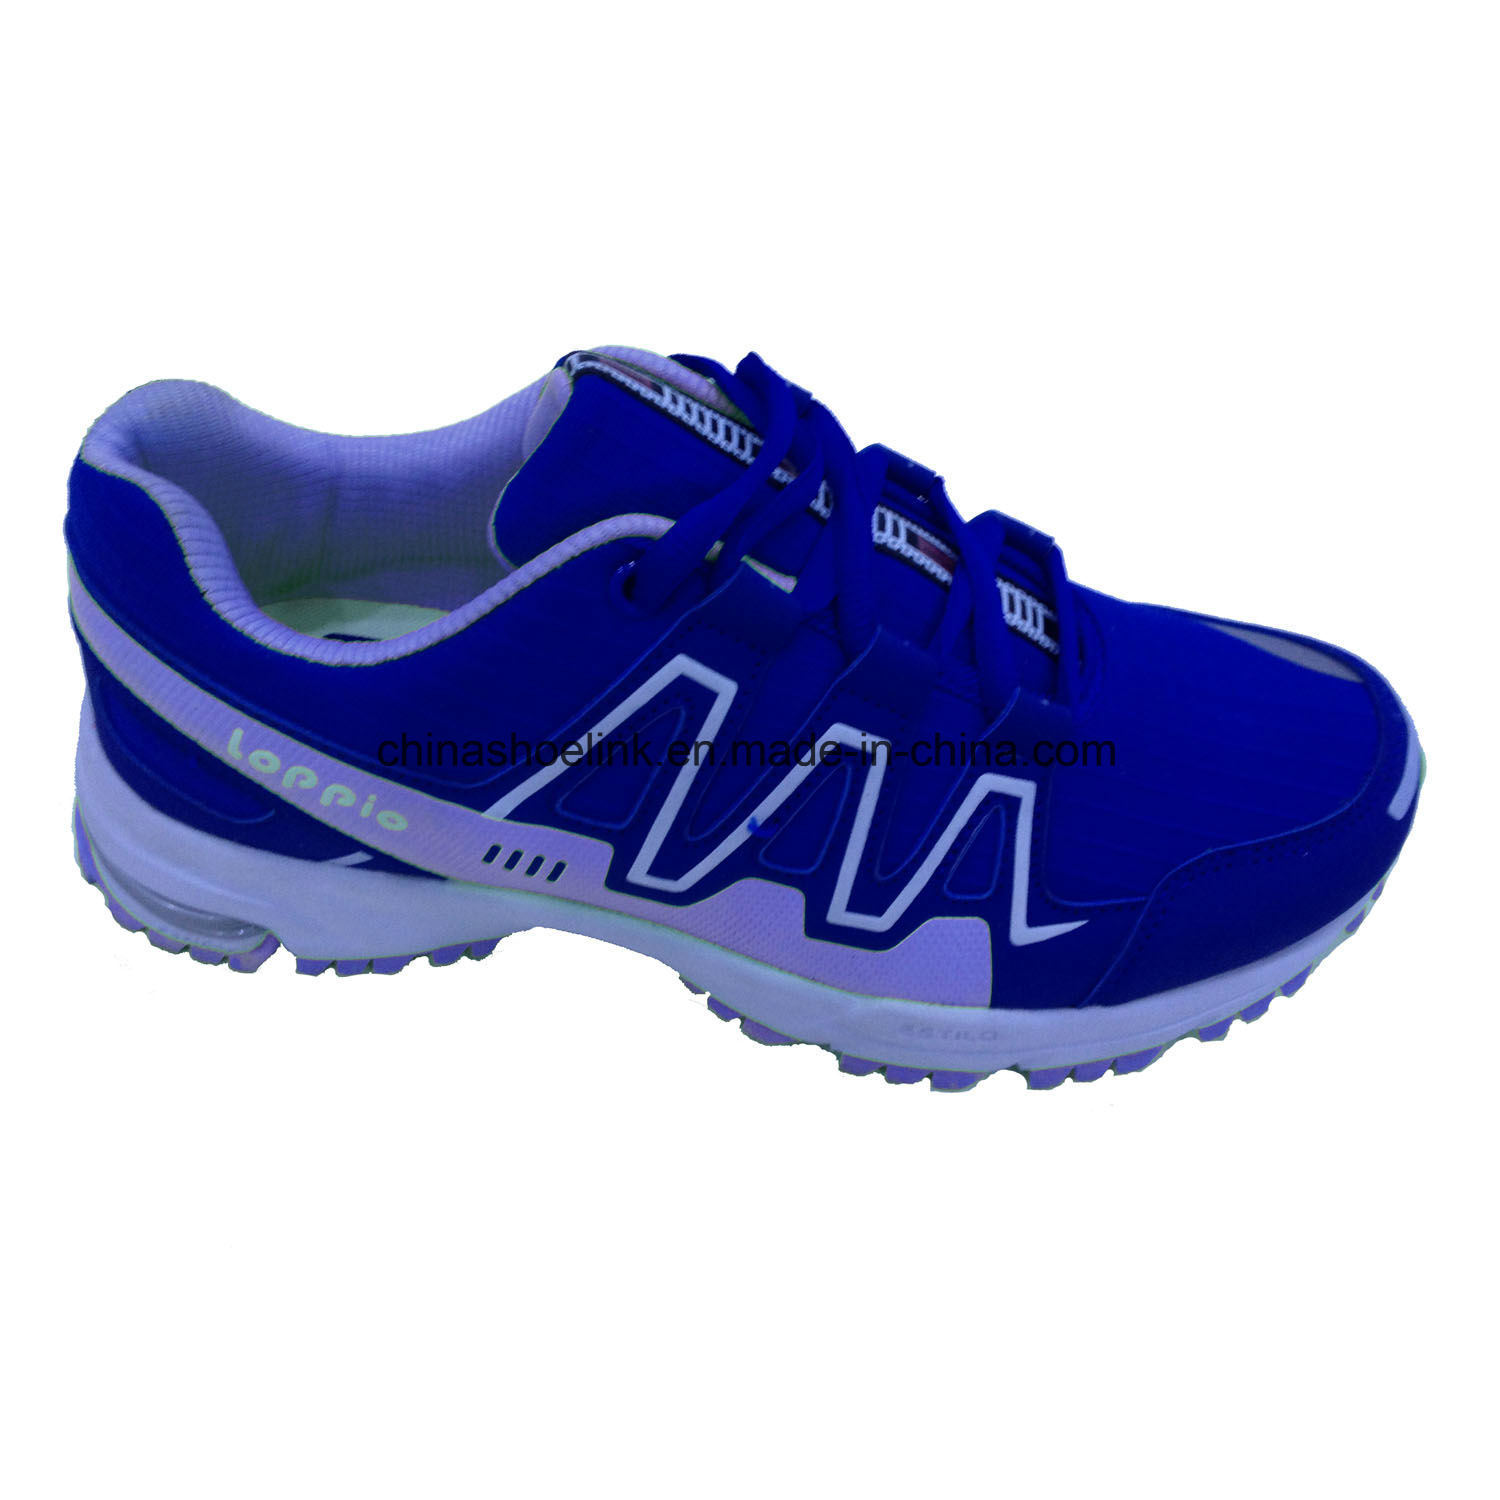 New Sneaker Running Sport Shoes Supplier Athletic Shoes for Men and Women